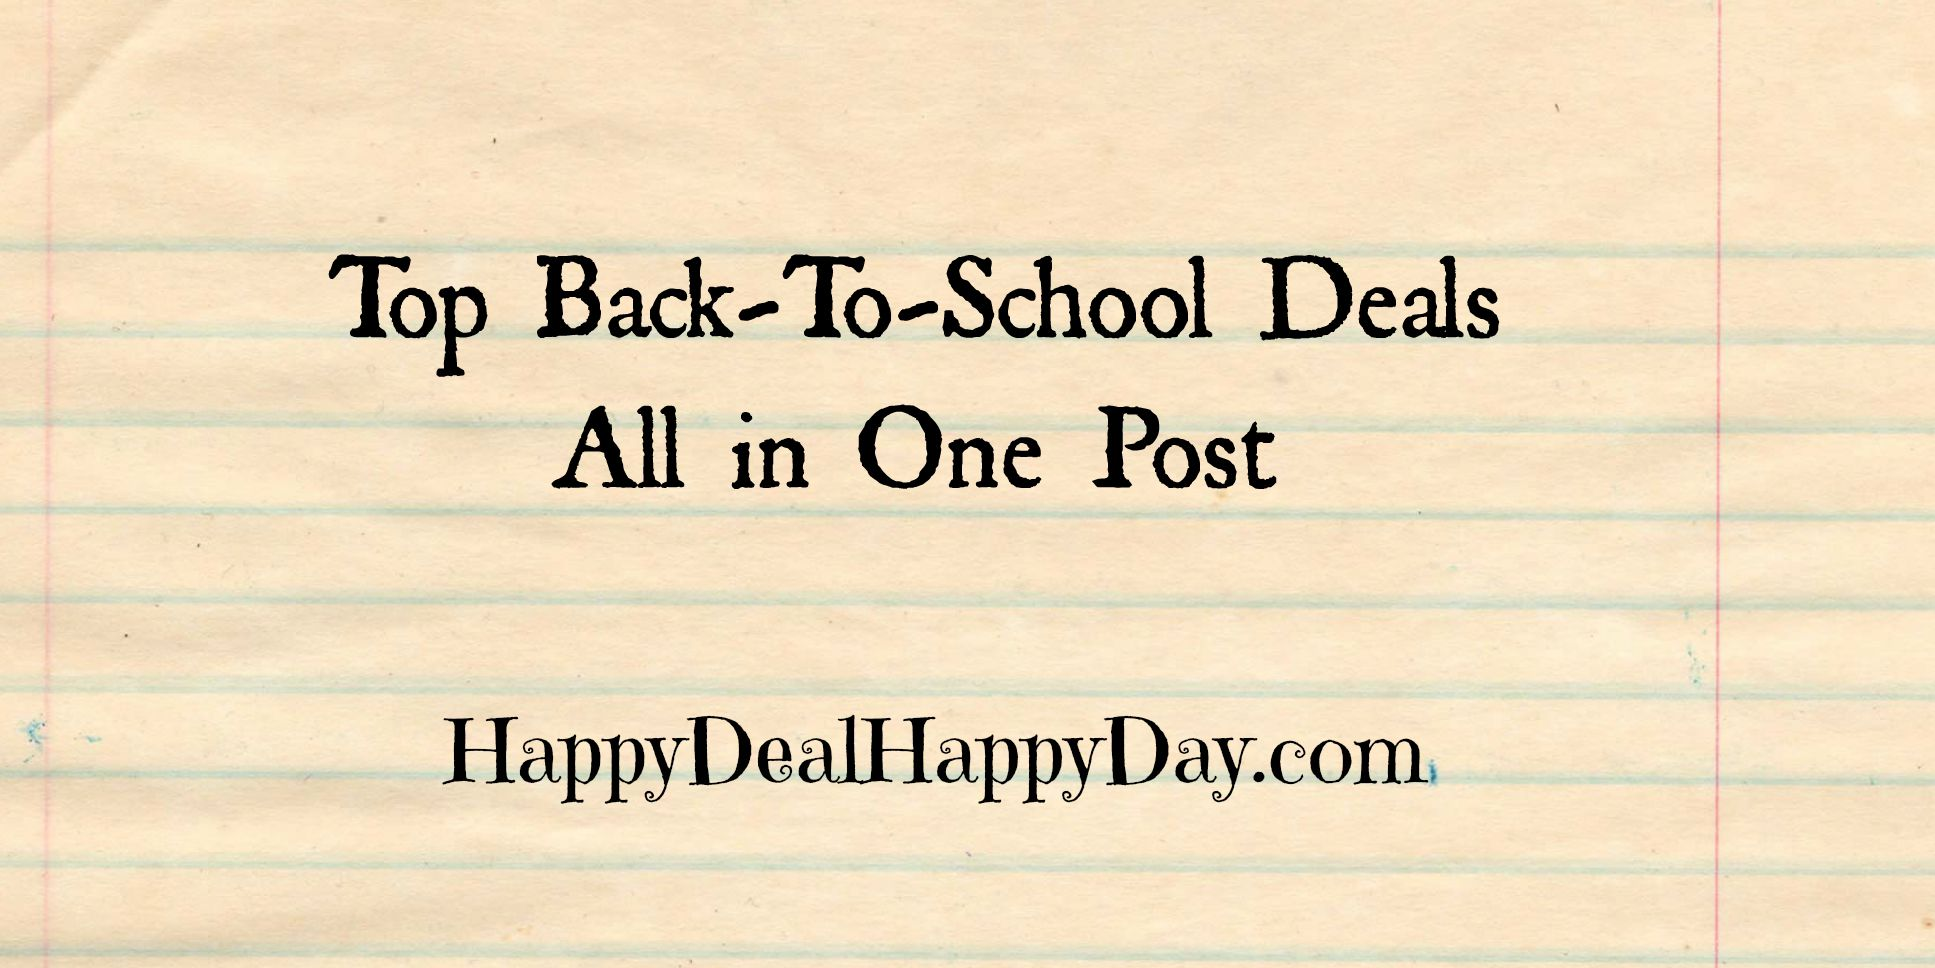 Back-To-School Deals – Best Offers in ONE Post!  Updated 8/20/16